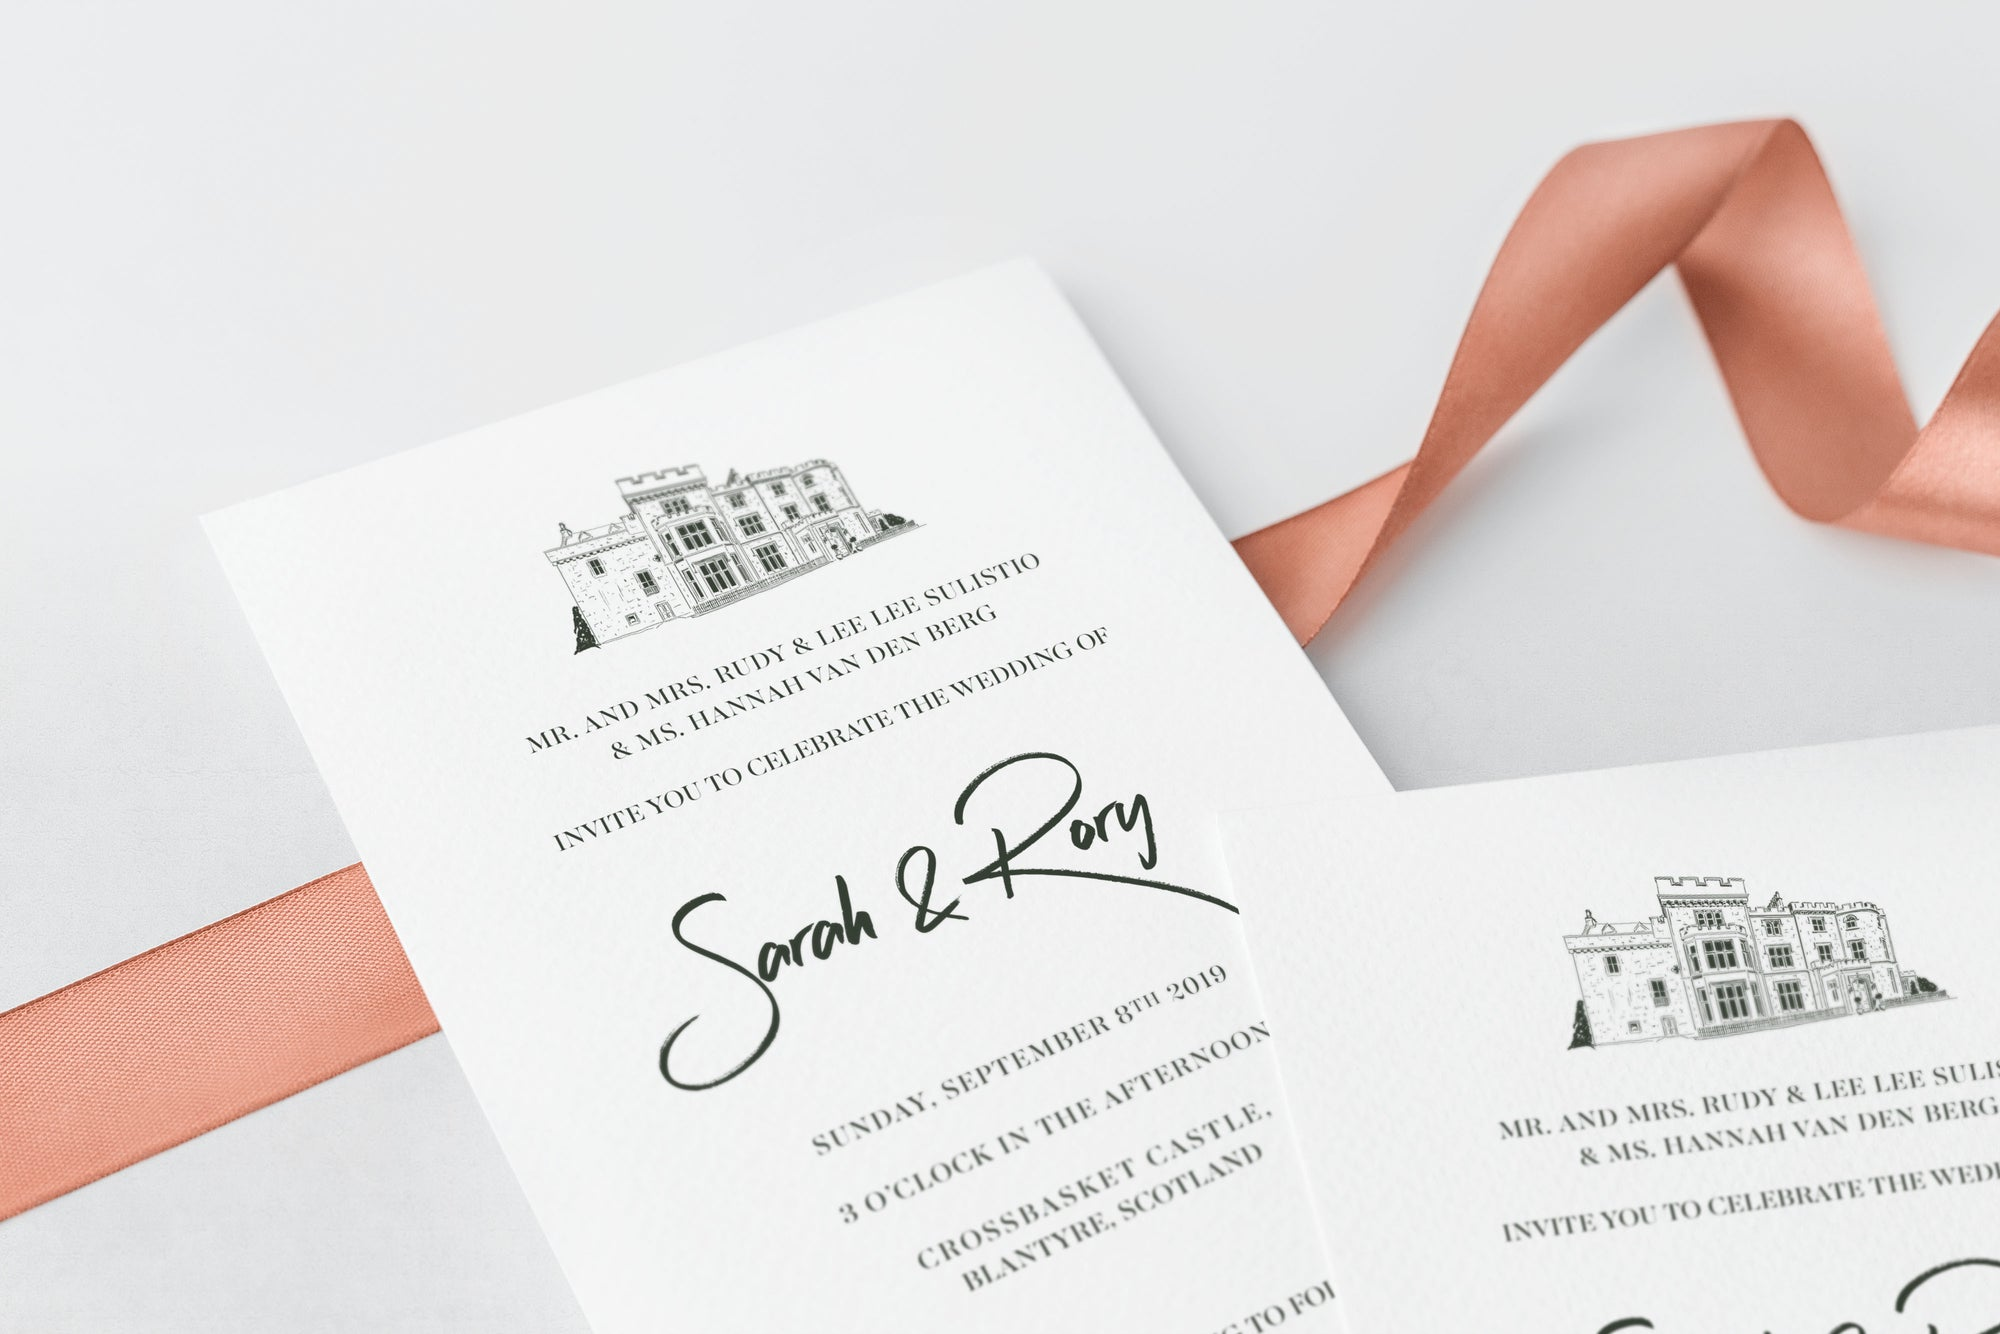 10 Things You Should Know Before You Buy Wedding Invitations